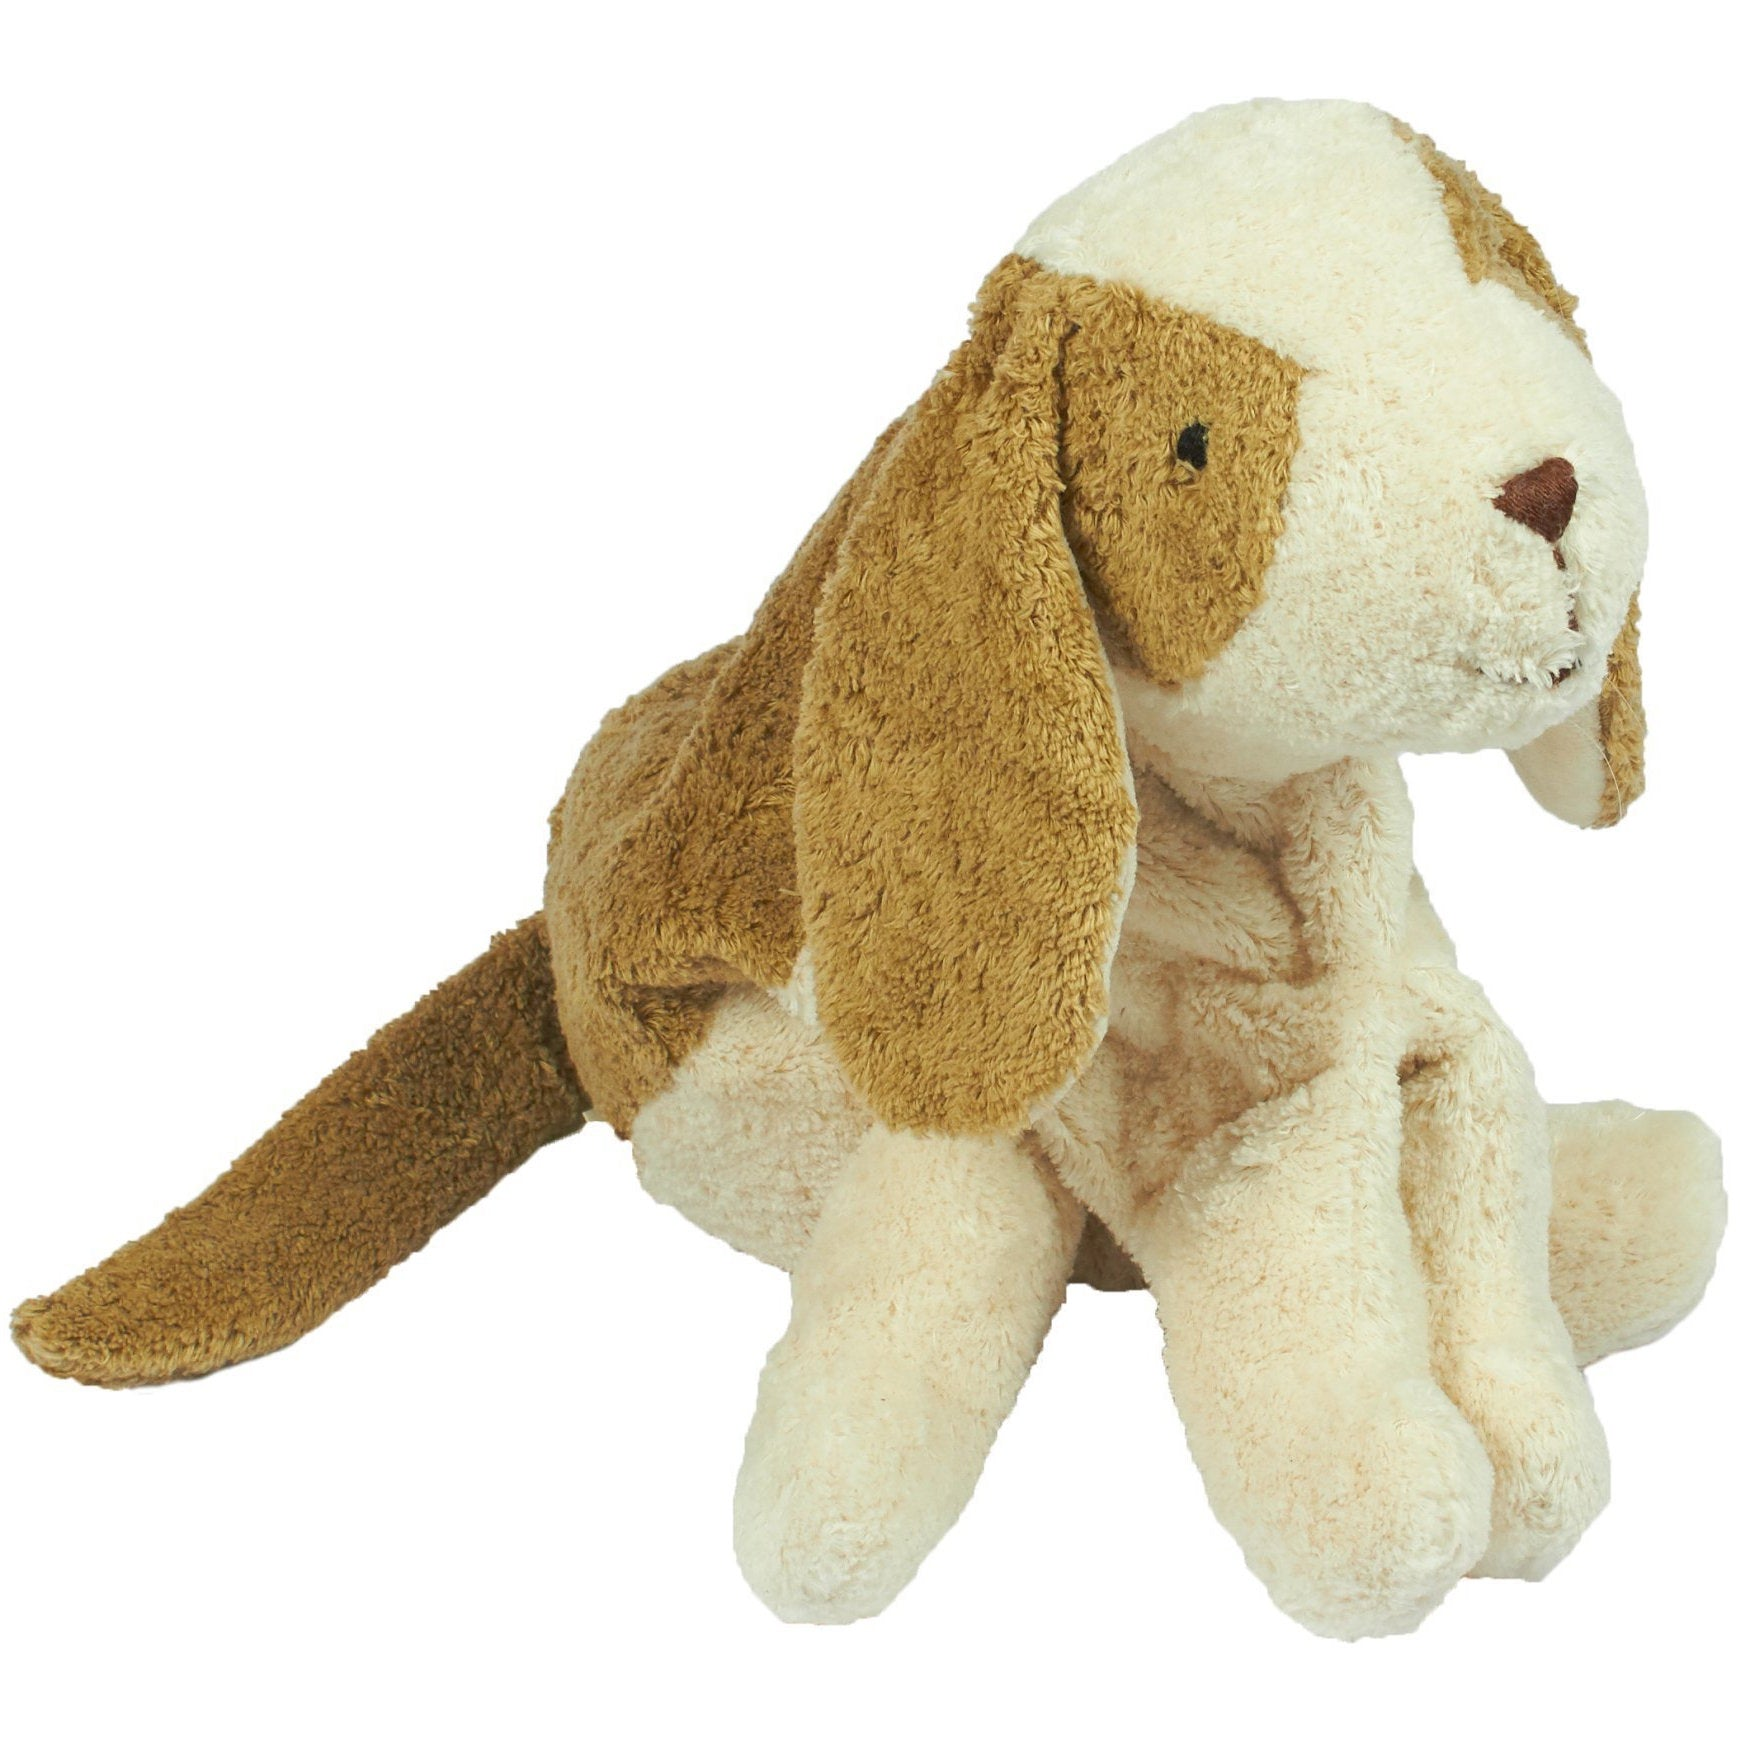 Senger organic cotton cuddly stuffed animal - large dog